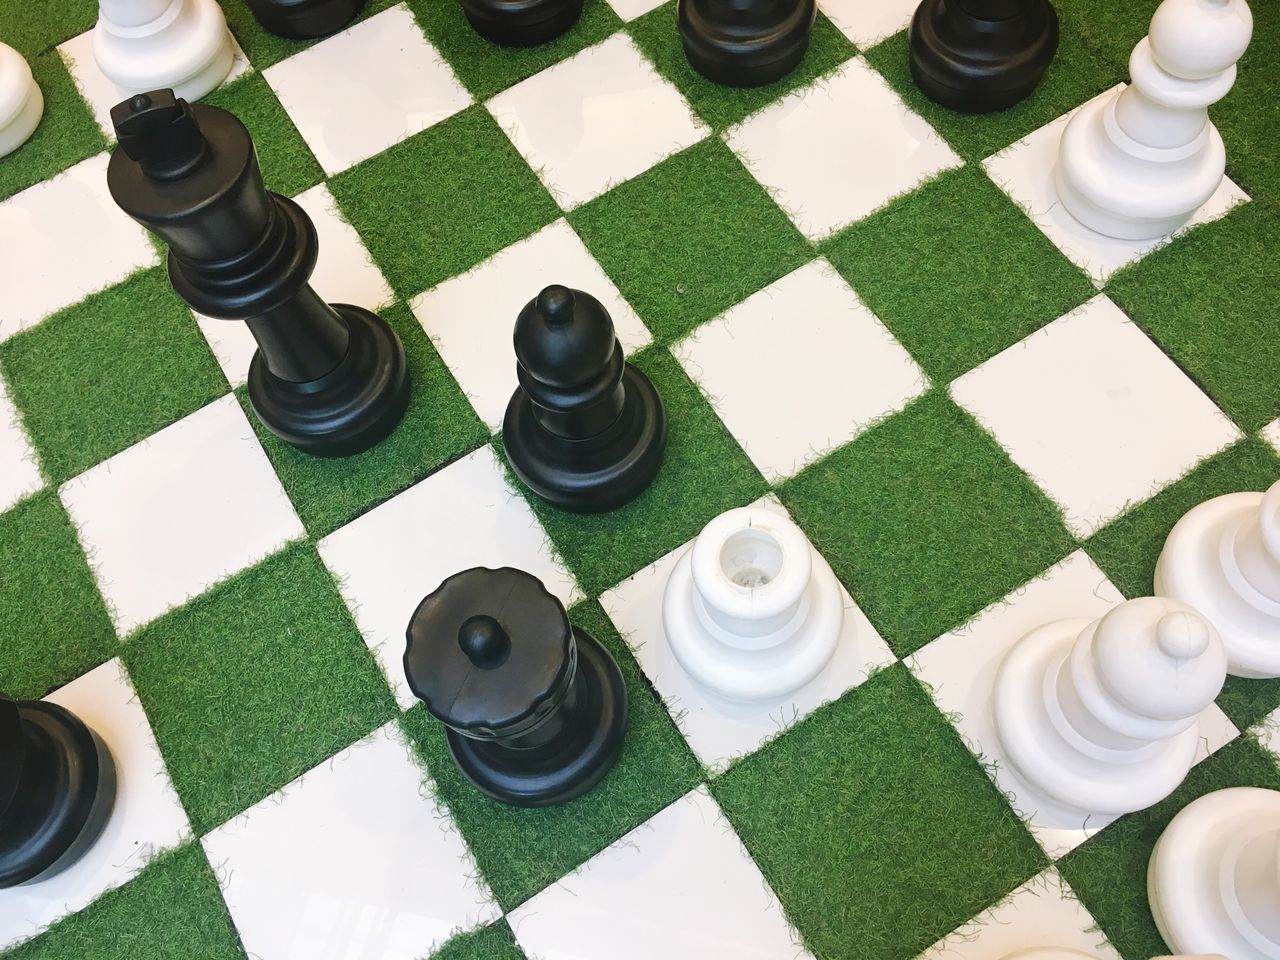 Chess Chessboard Chesspieces Chess Piece Chess Board Chess Game Chess Set Chess Pieces High Angle View Low Section Grass Person Footwear Green Medium Group Of Objects Green Color Grassy Colors and patterns Exploring Style